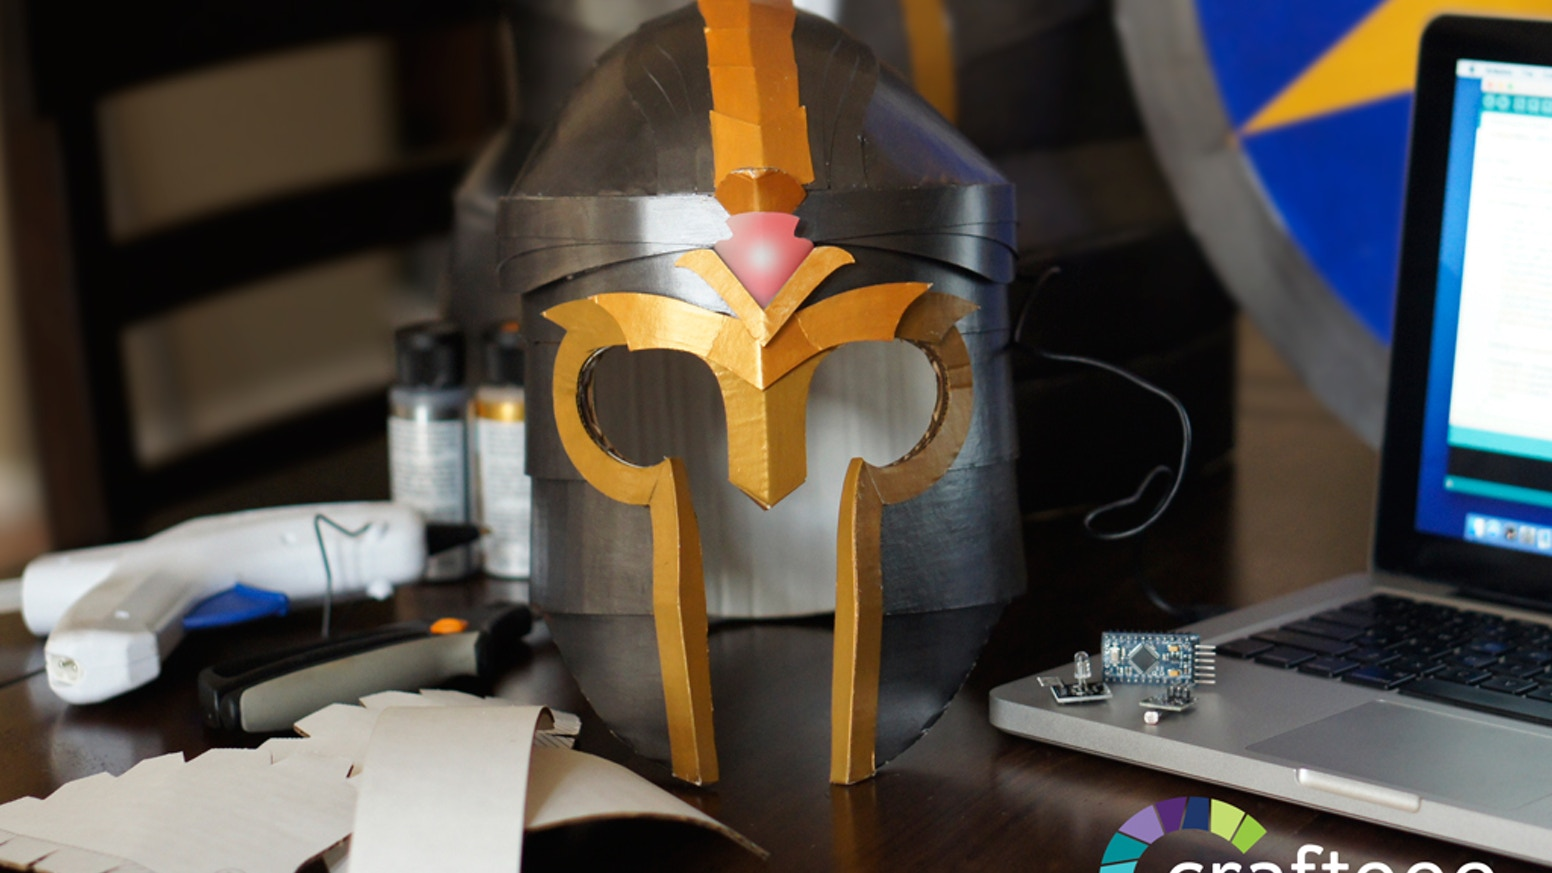 Light up your kids' imagination with our cardboard armor projects featuring programmable glowing lights